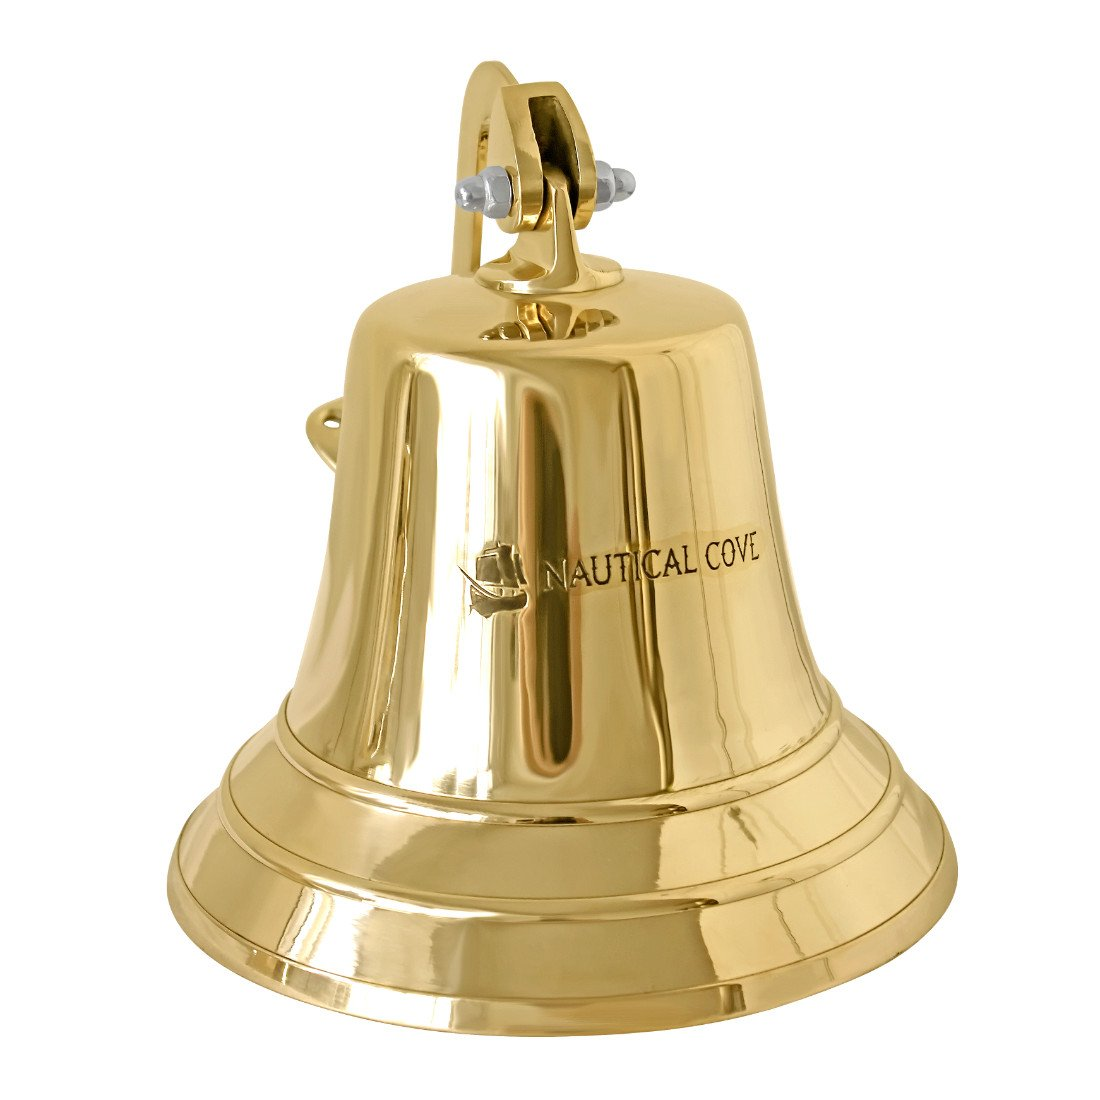 Nautical Cove Solid Brass Ships Bell 8'' Tall and Wall Mountable - Clear Ring for Indoor and Outdoor Use